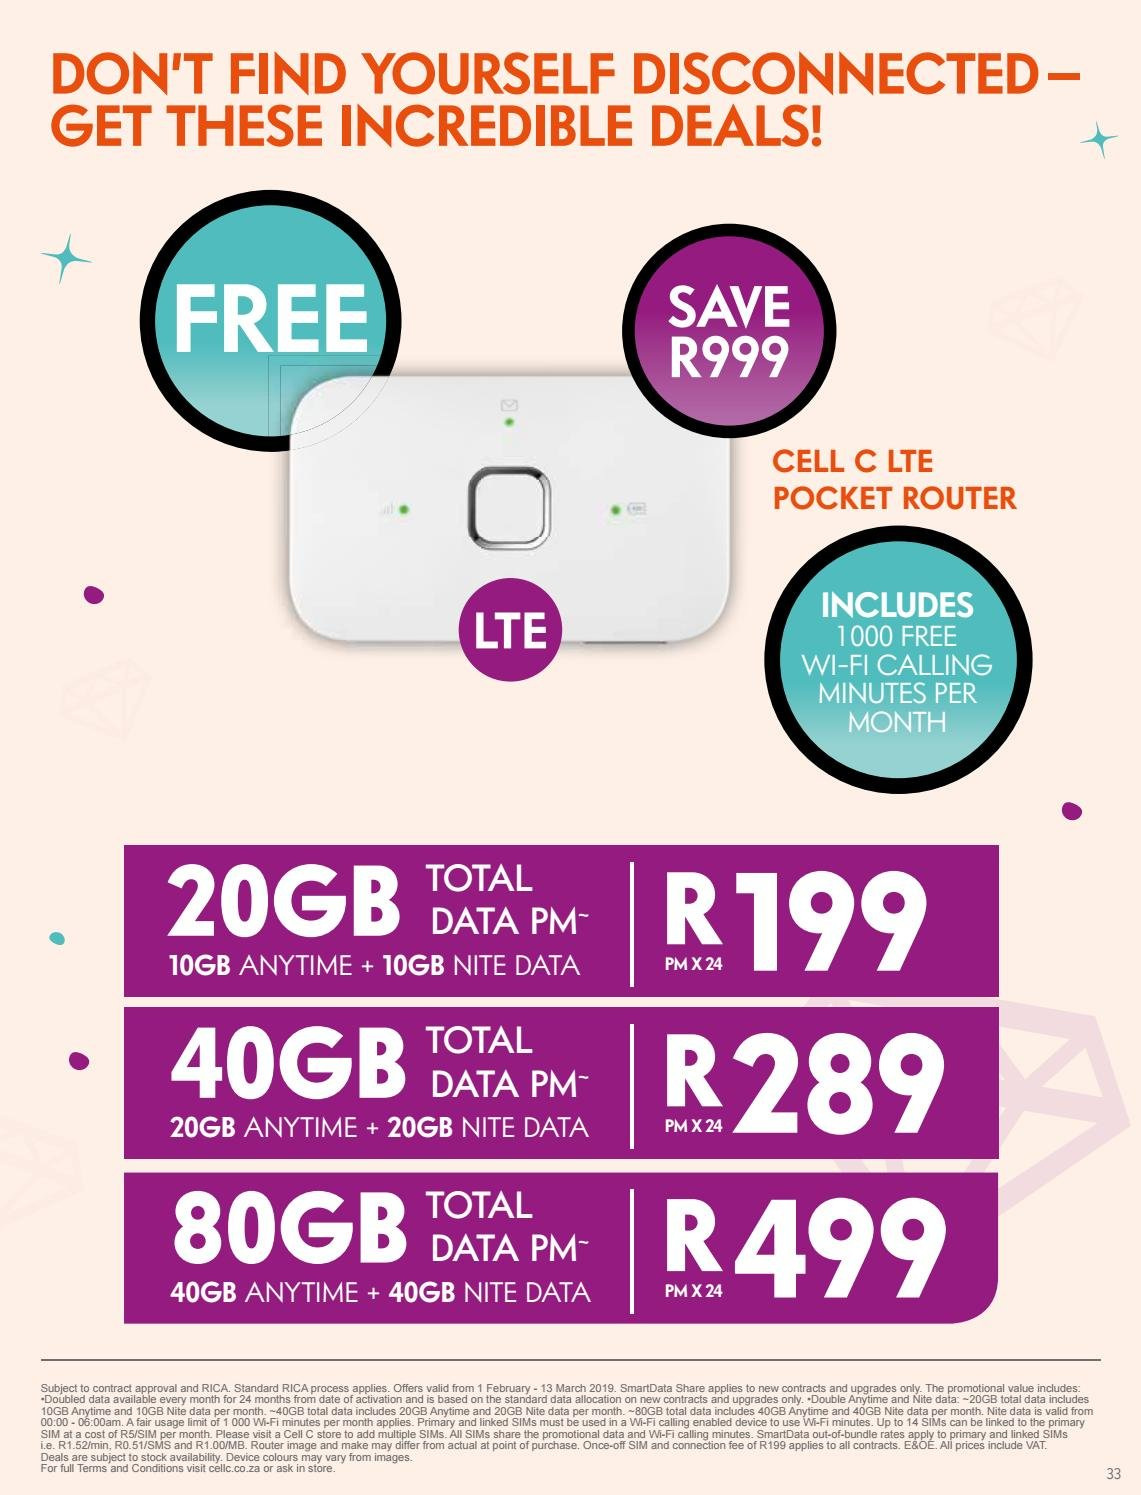 cell c wifi deals 2019